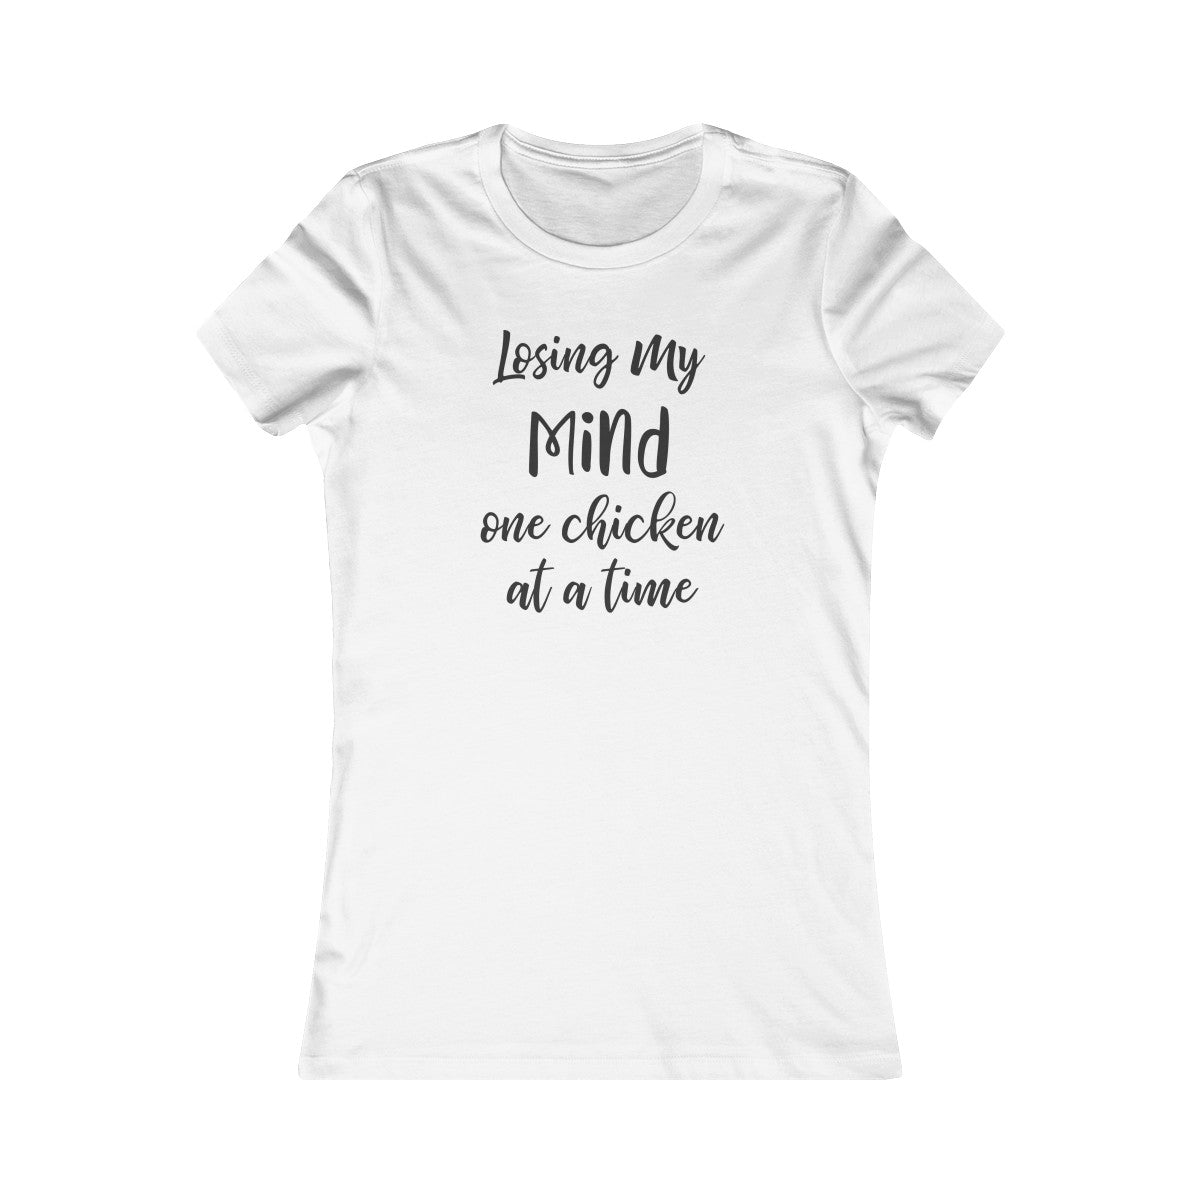 Losing My Mind Women's Favorite Tee